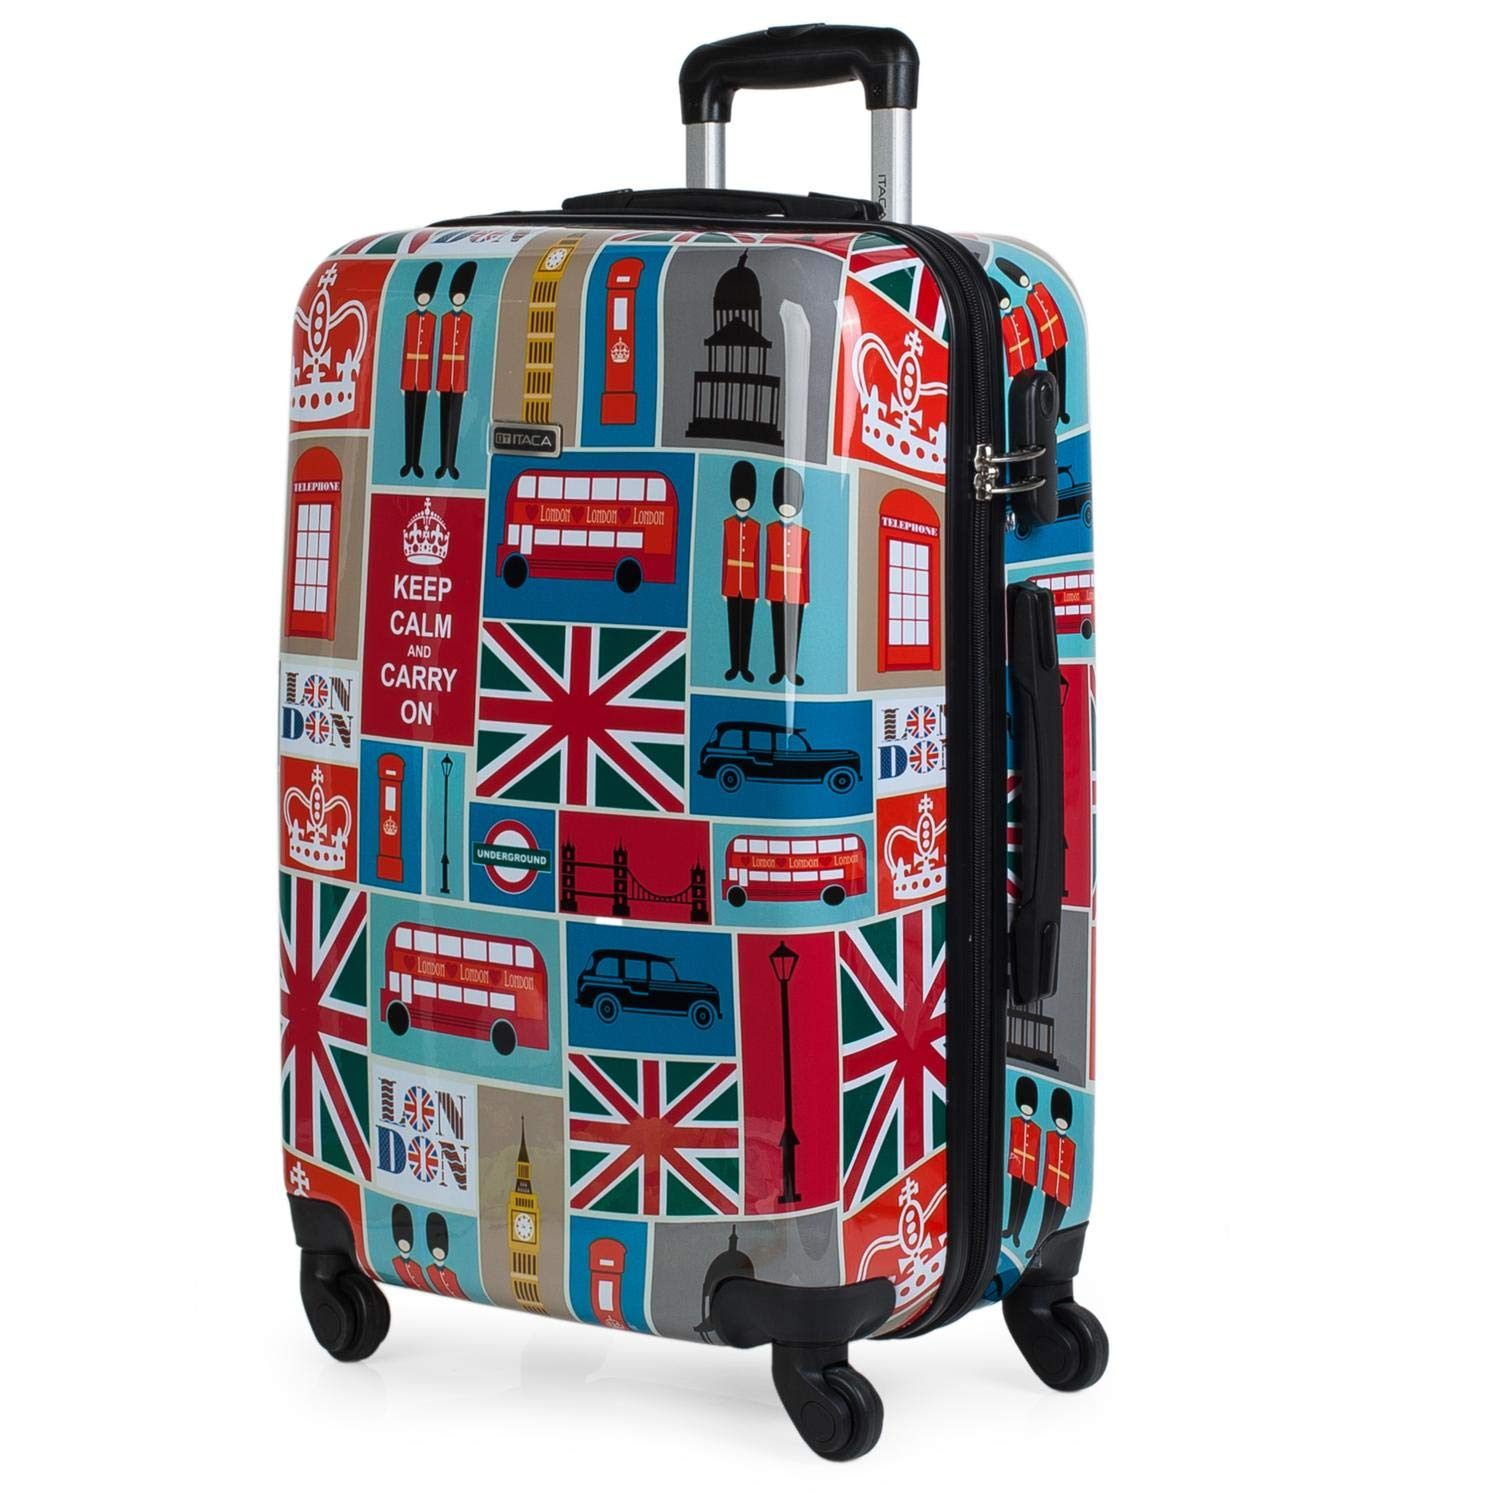 Maleta Itaca 702160 London opiniones